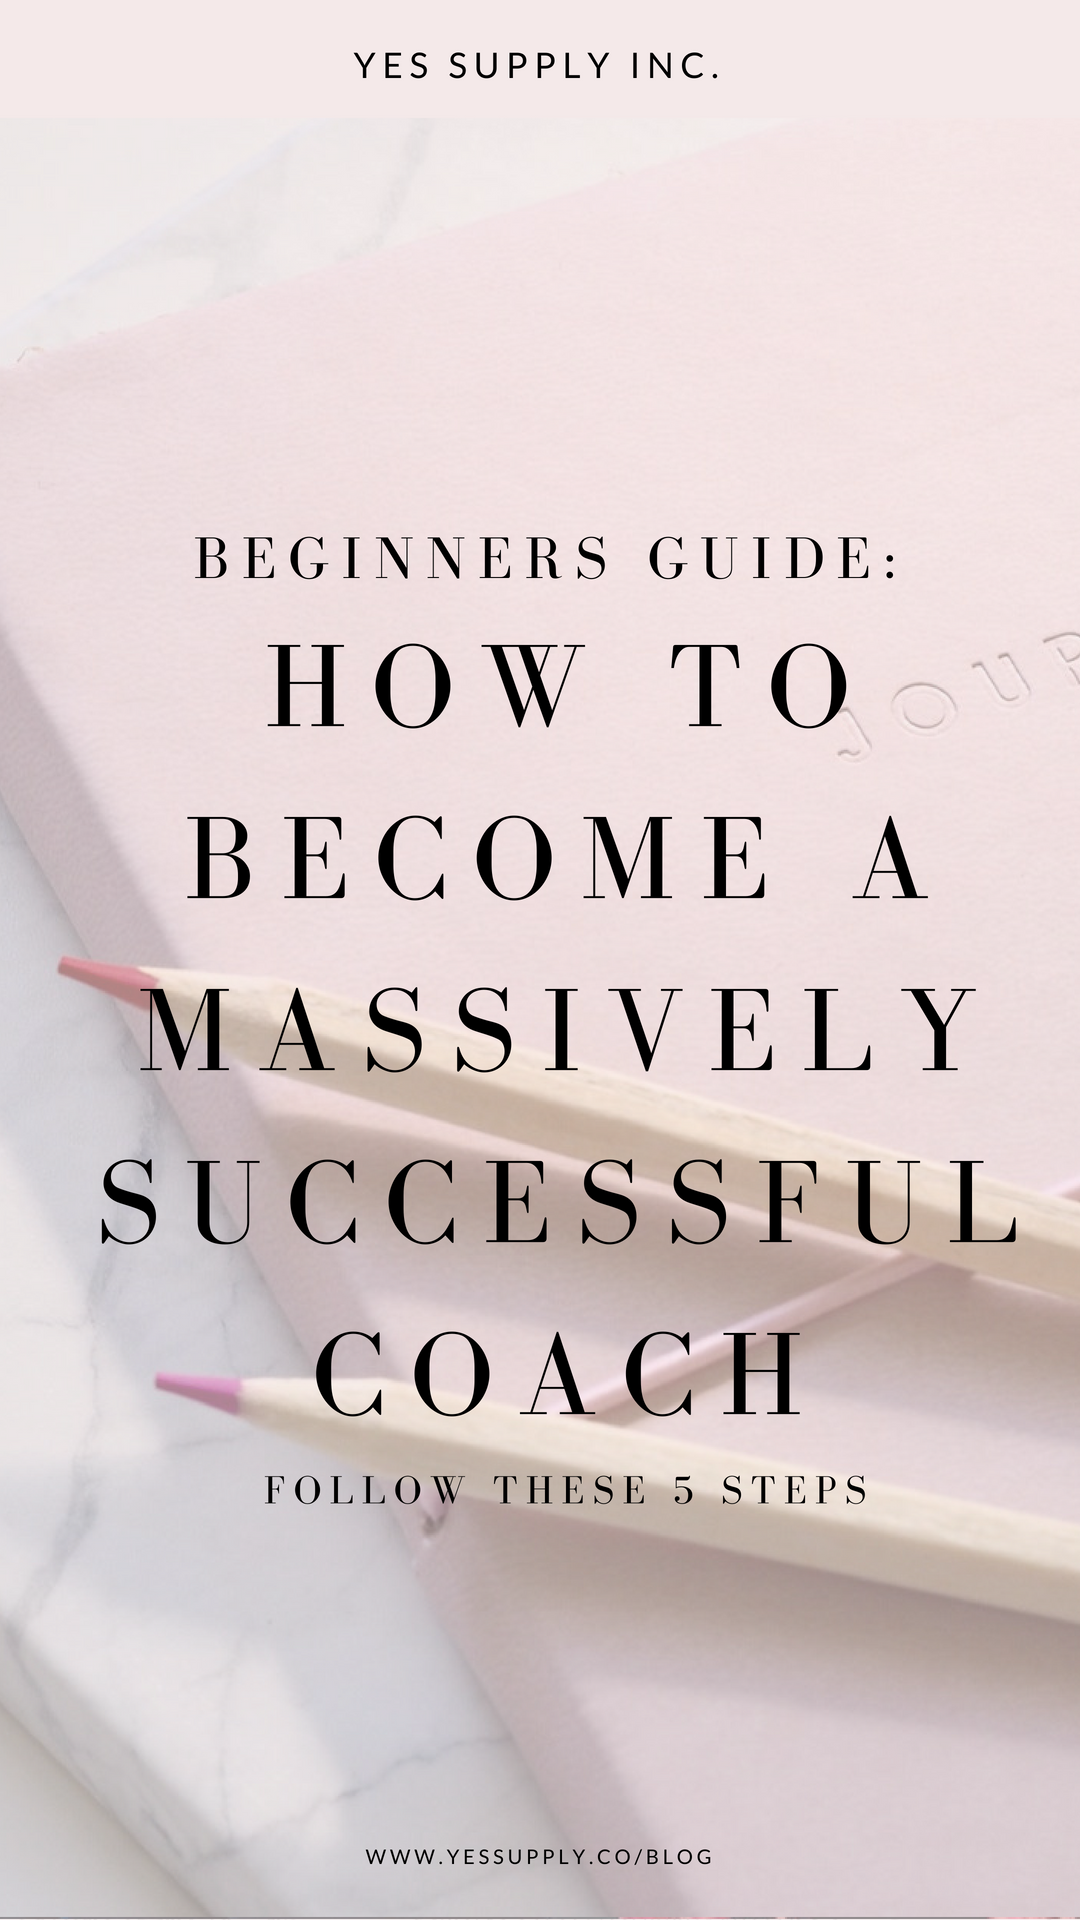 Wondering how to become a successful coach? If you want to become a coach, a spiritual coach, mindset coach, or success coach? Read on and I'll show you the steps to get there! Read more about launching your coaching business at www.yessupply.co